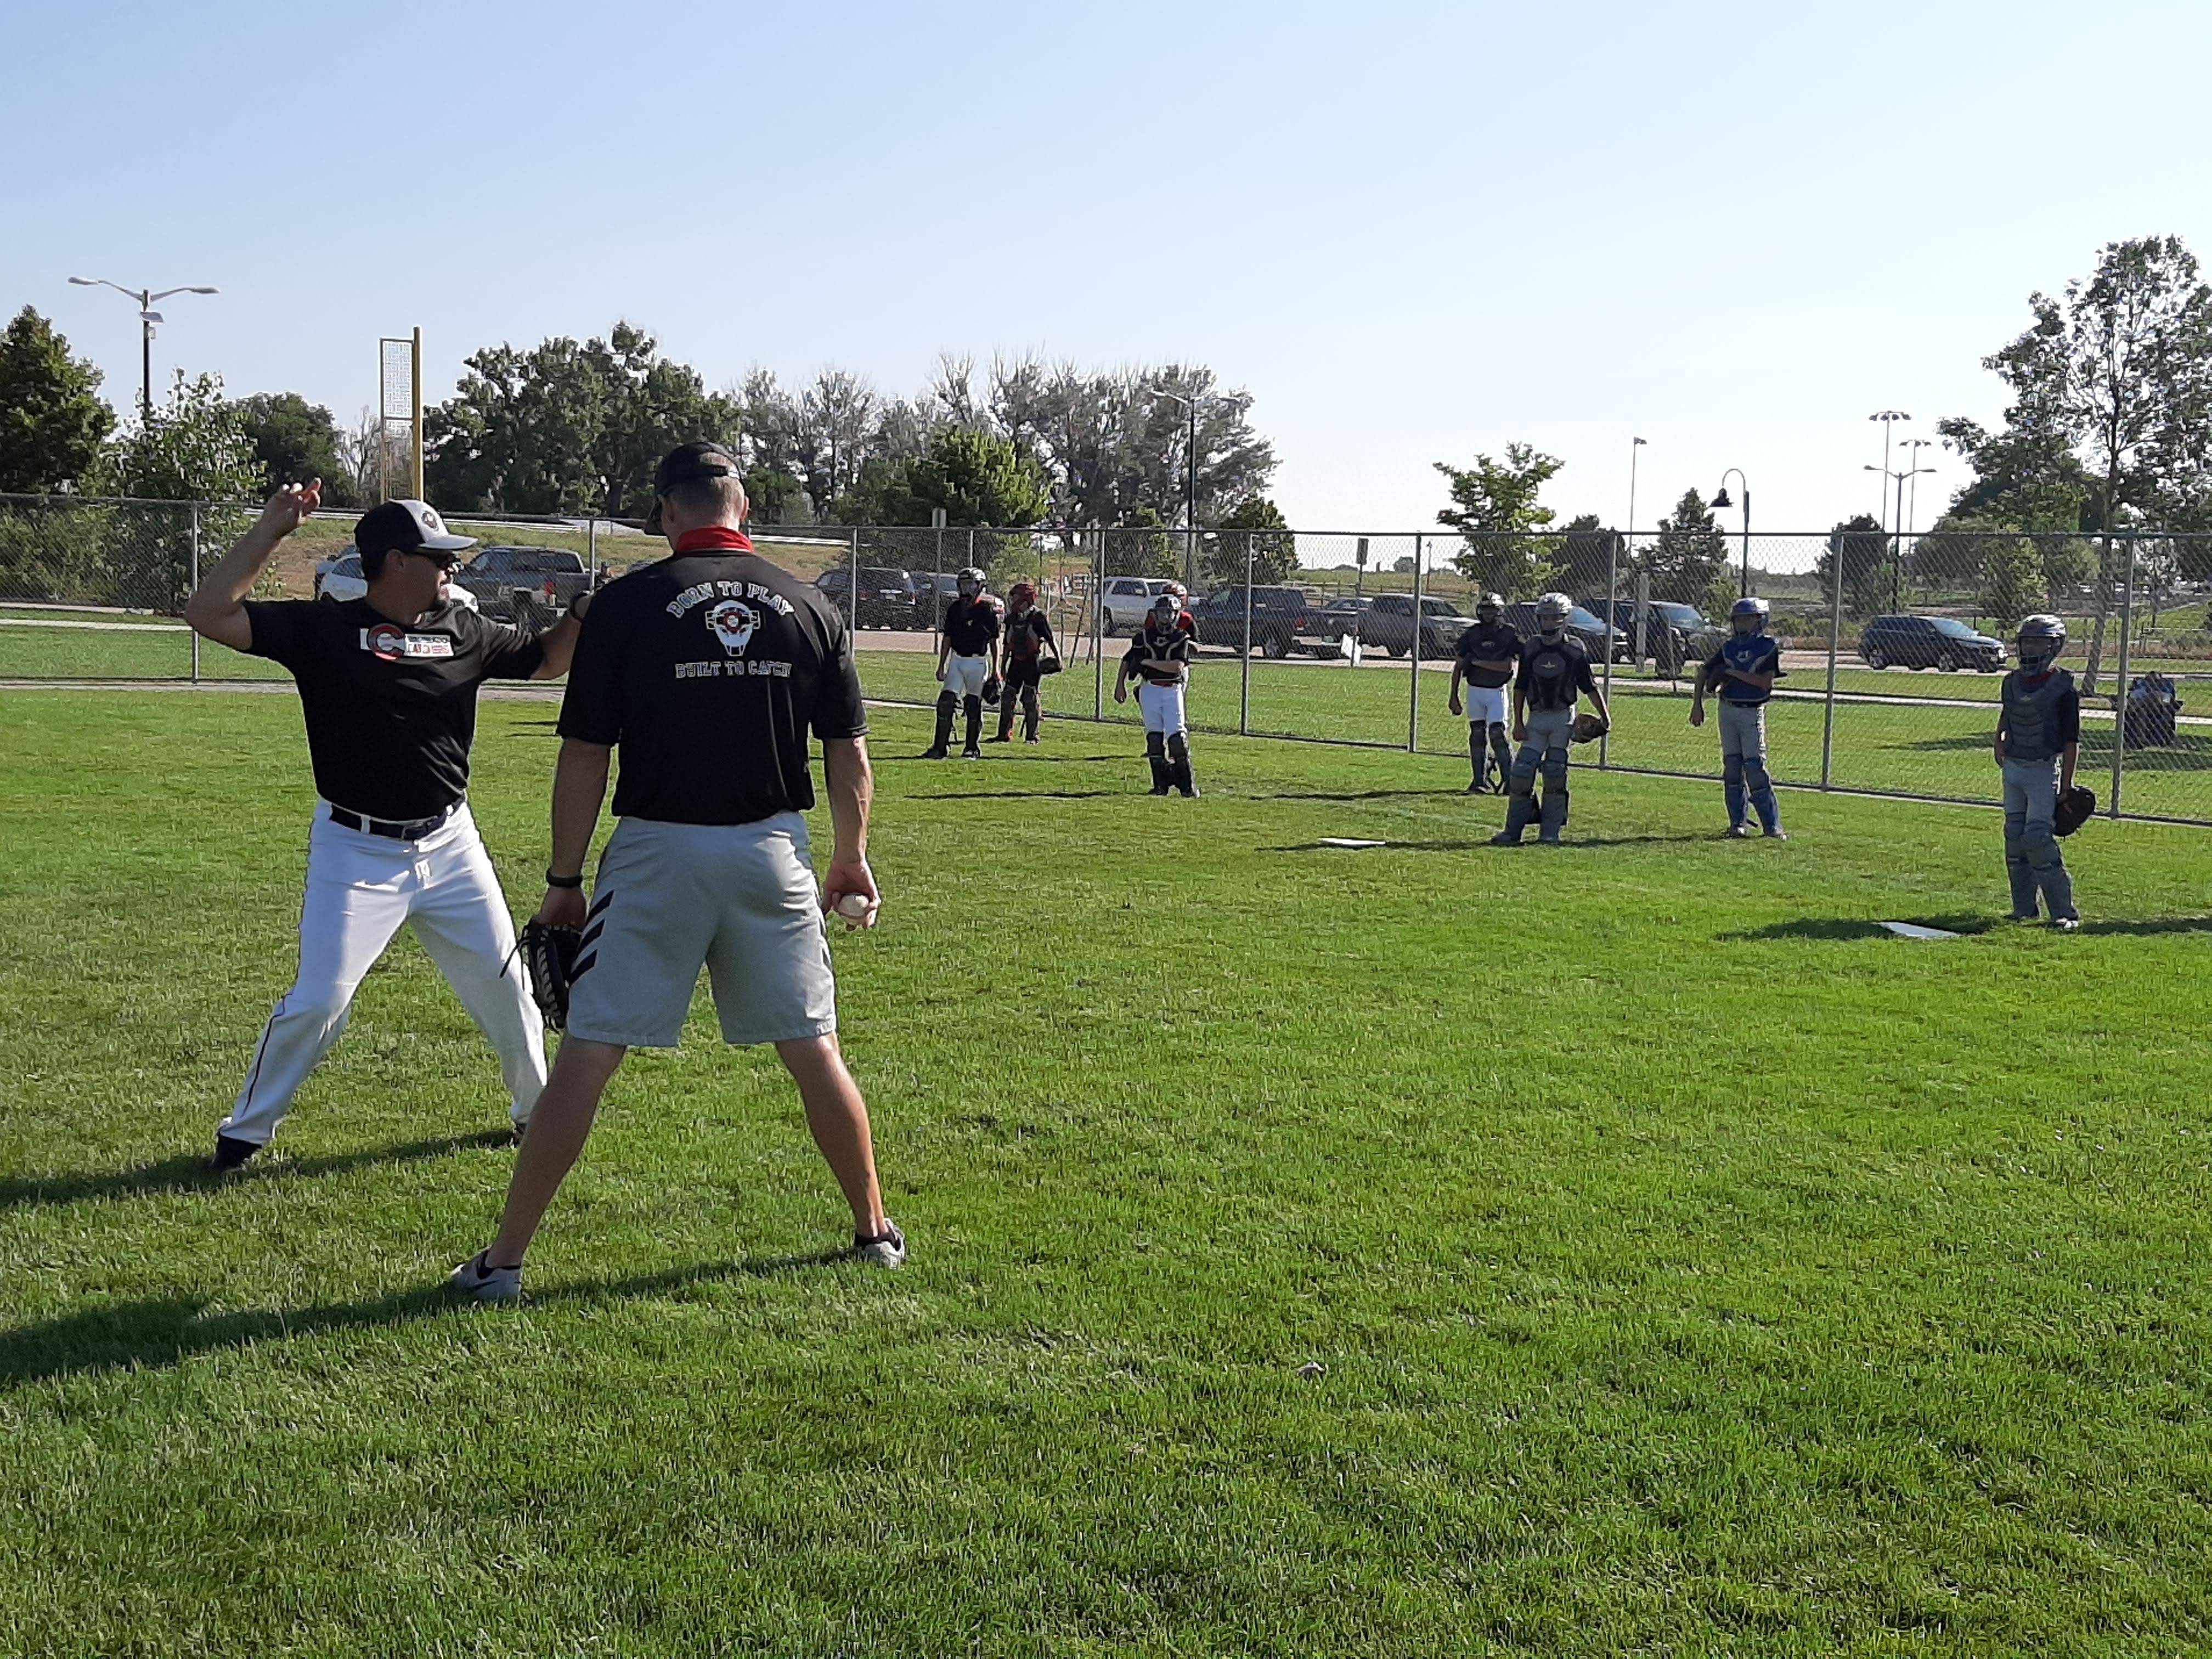 Instruction on throwing footwork